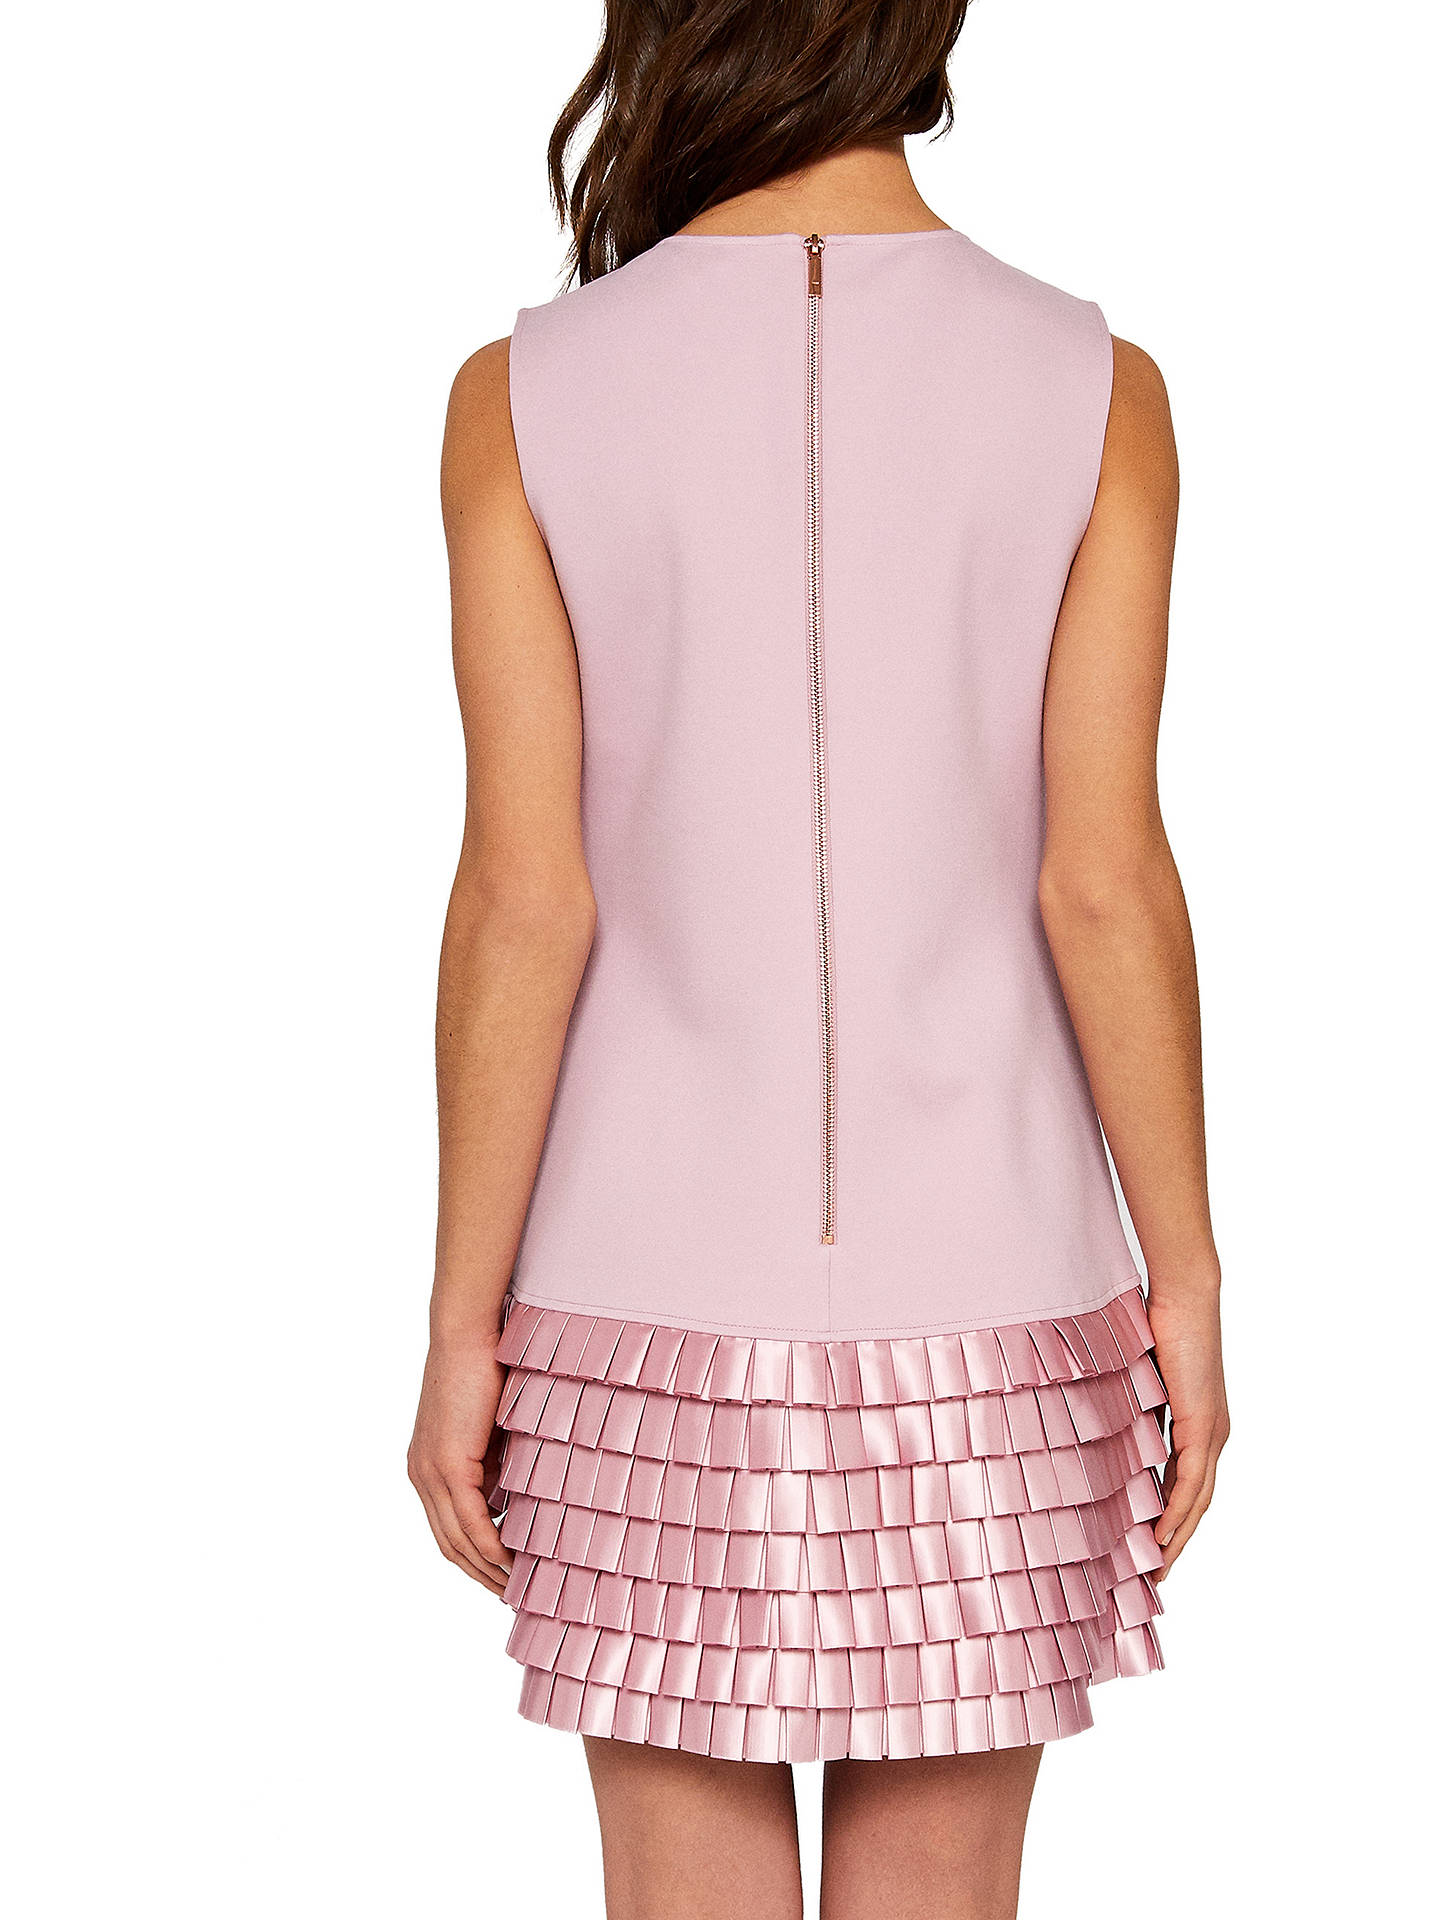 BuyTed Baker Marggia Satin Loop Shift Dress, Pale Pink, 0 Online at johnlewis.com